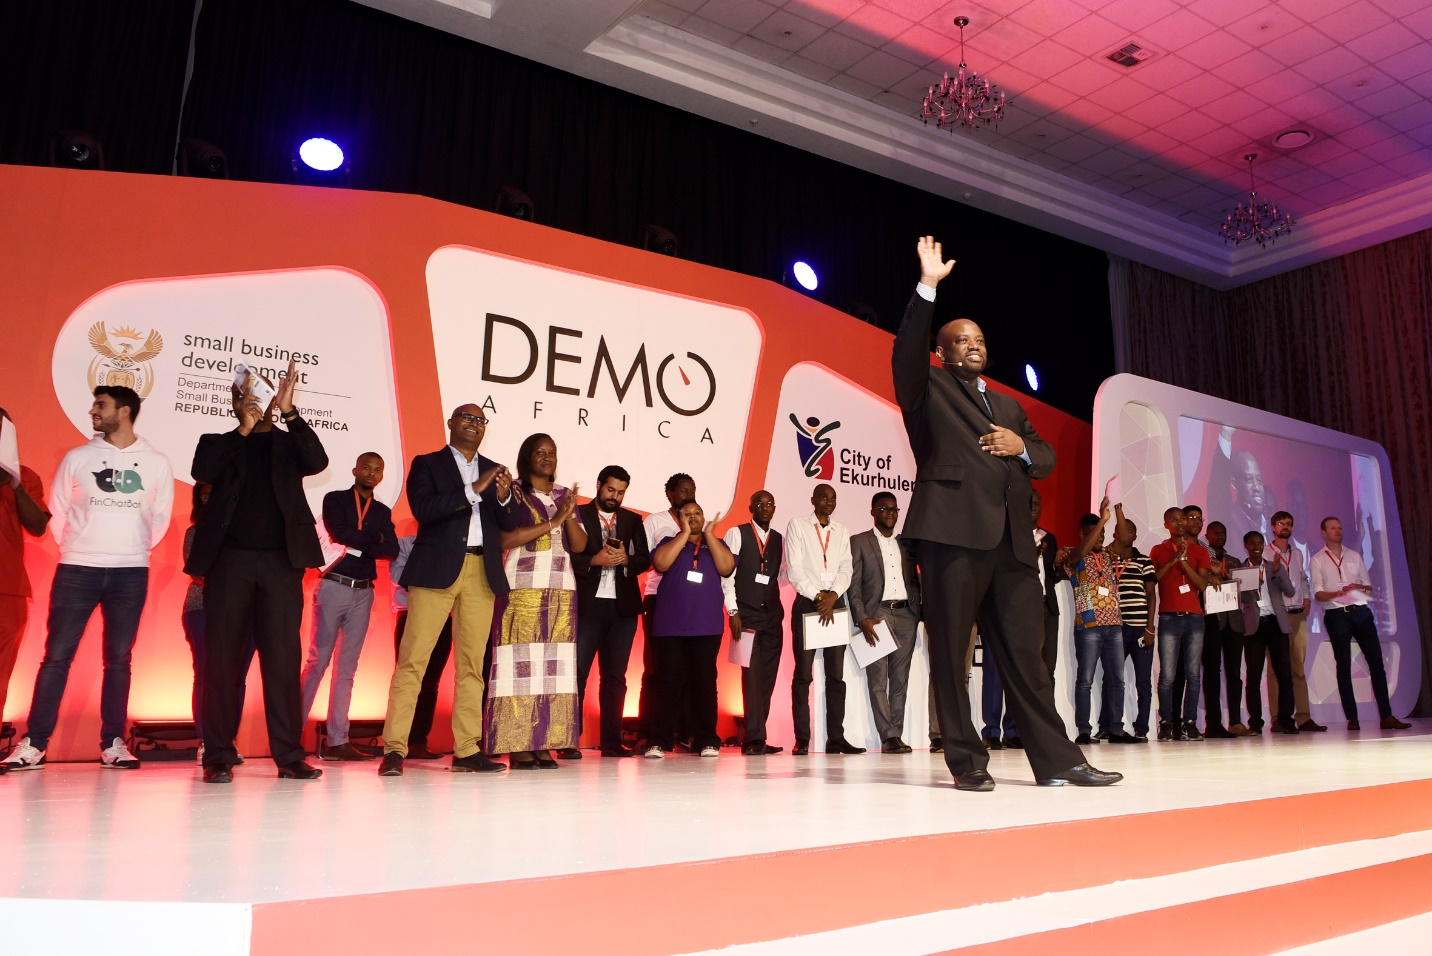 DEMO AFRICA HEADS TO NORTH AFRICA FOR TECHNOLOGY SHOWCASE